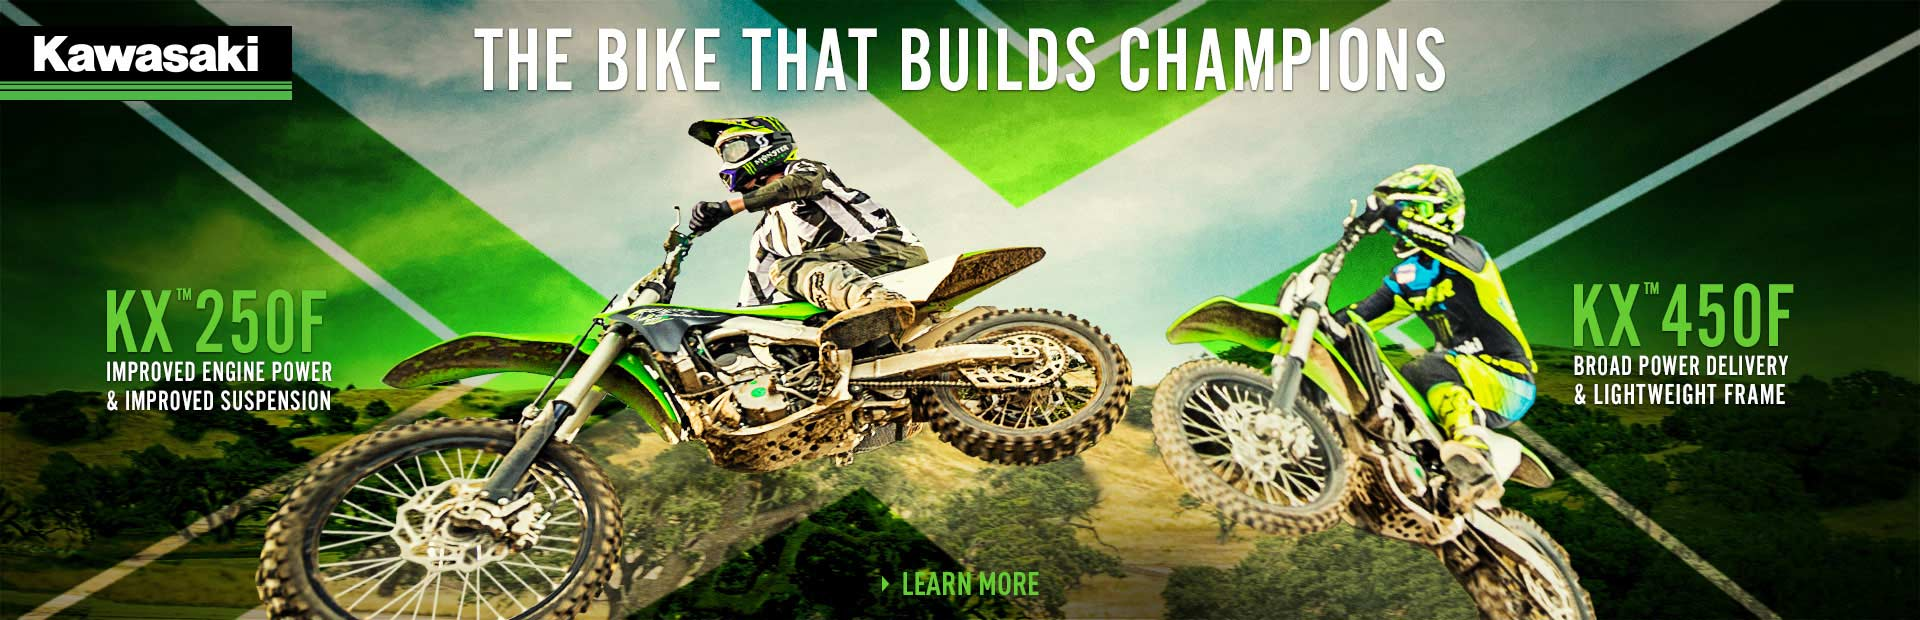 Home Lake City Powersports Seattle, WA (206) 364-1372